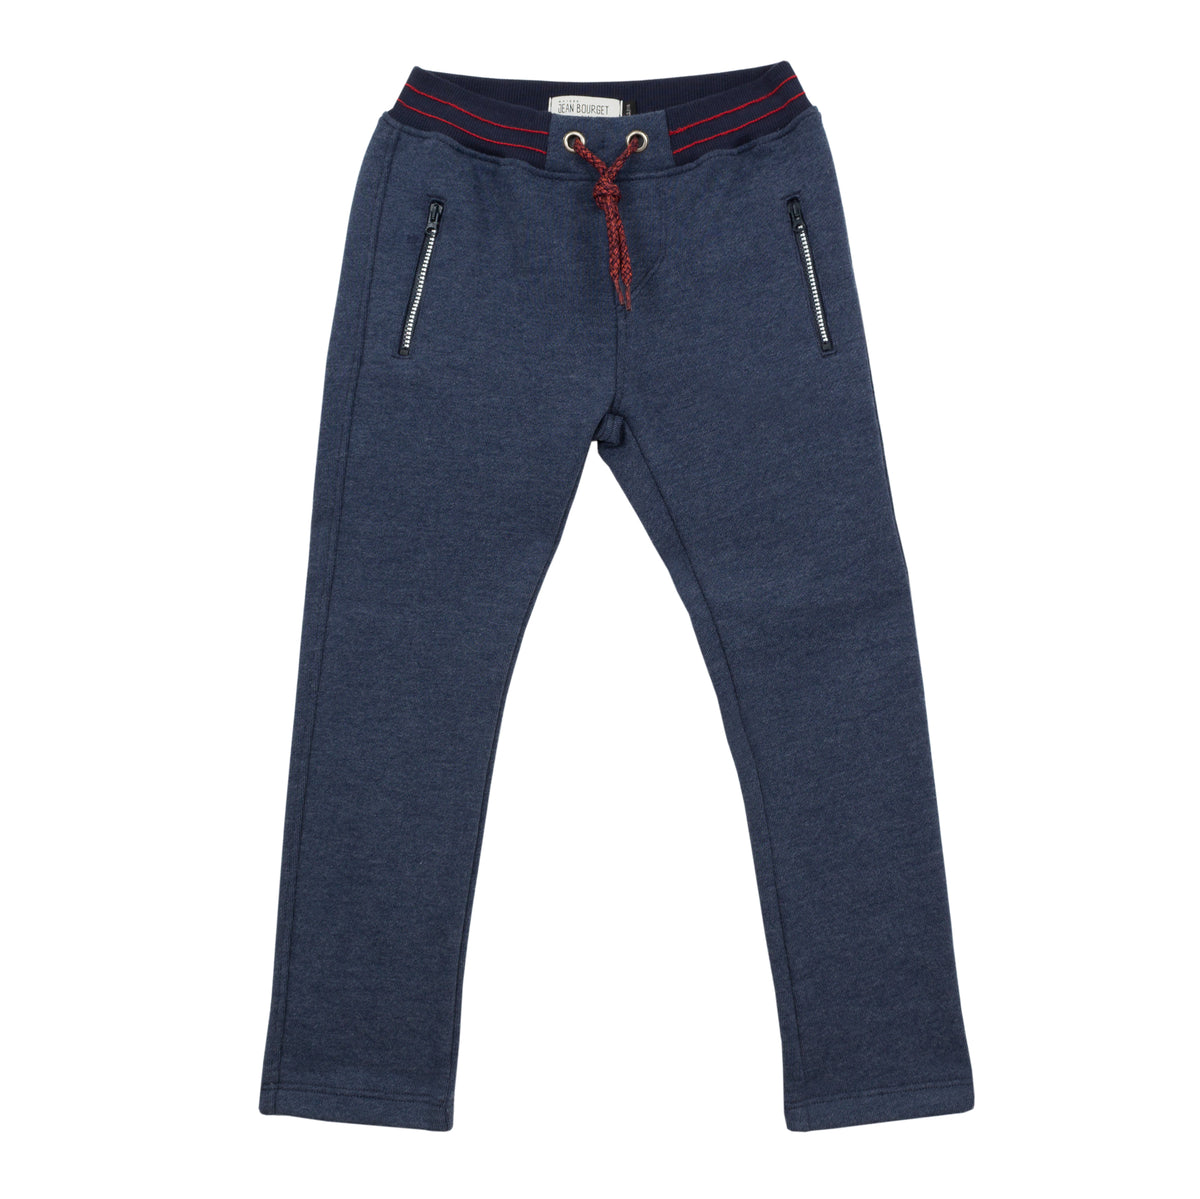 Jean Bourget indigo fleece jog is warm and practical. The elasticated belt is punctuated with red stitching.